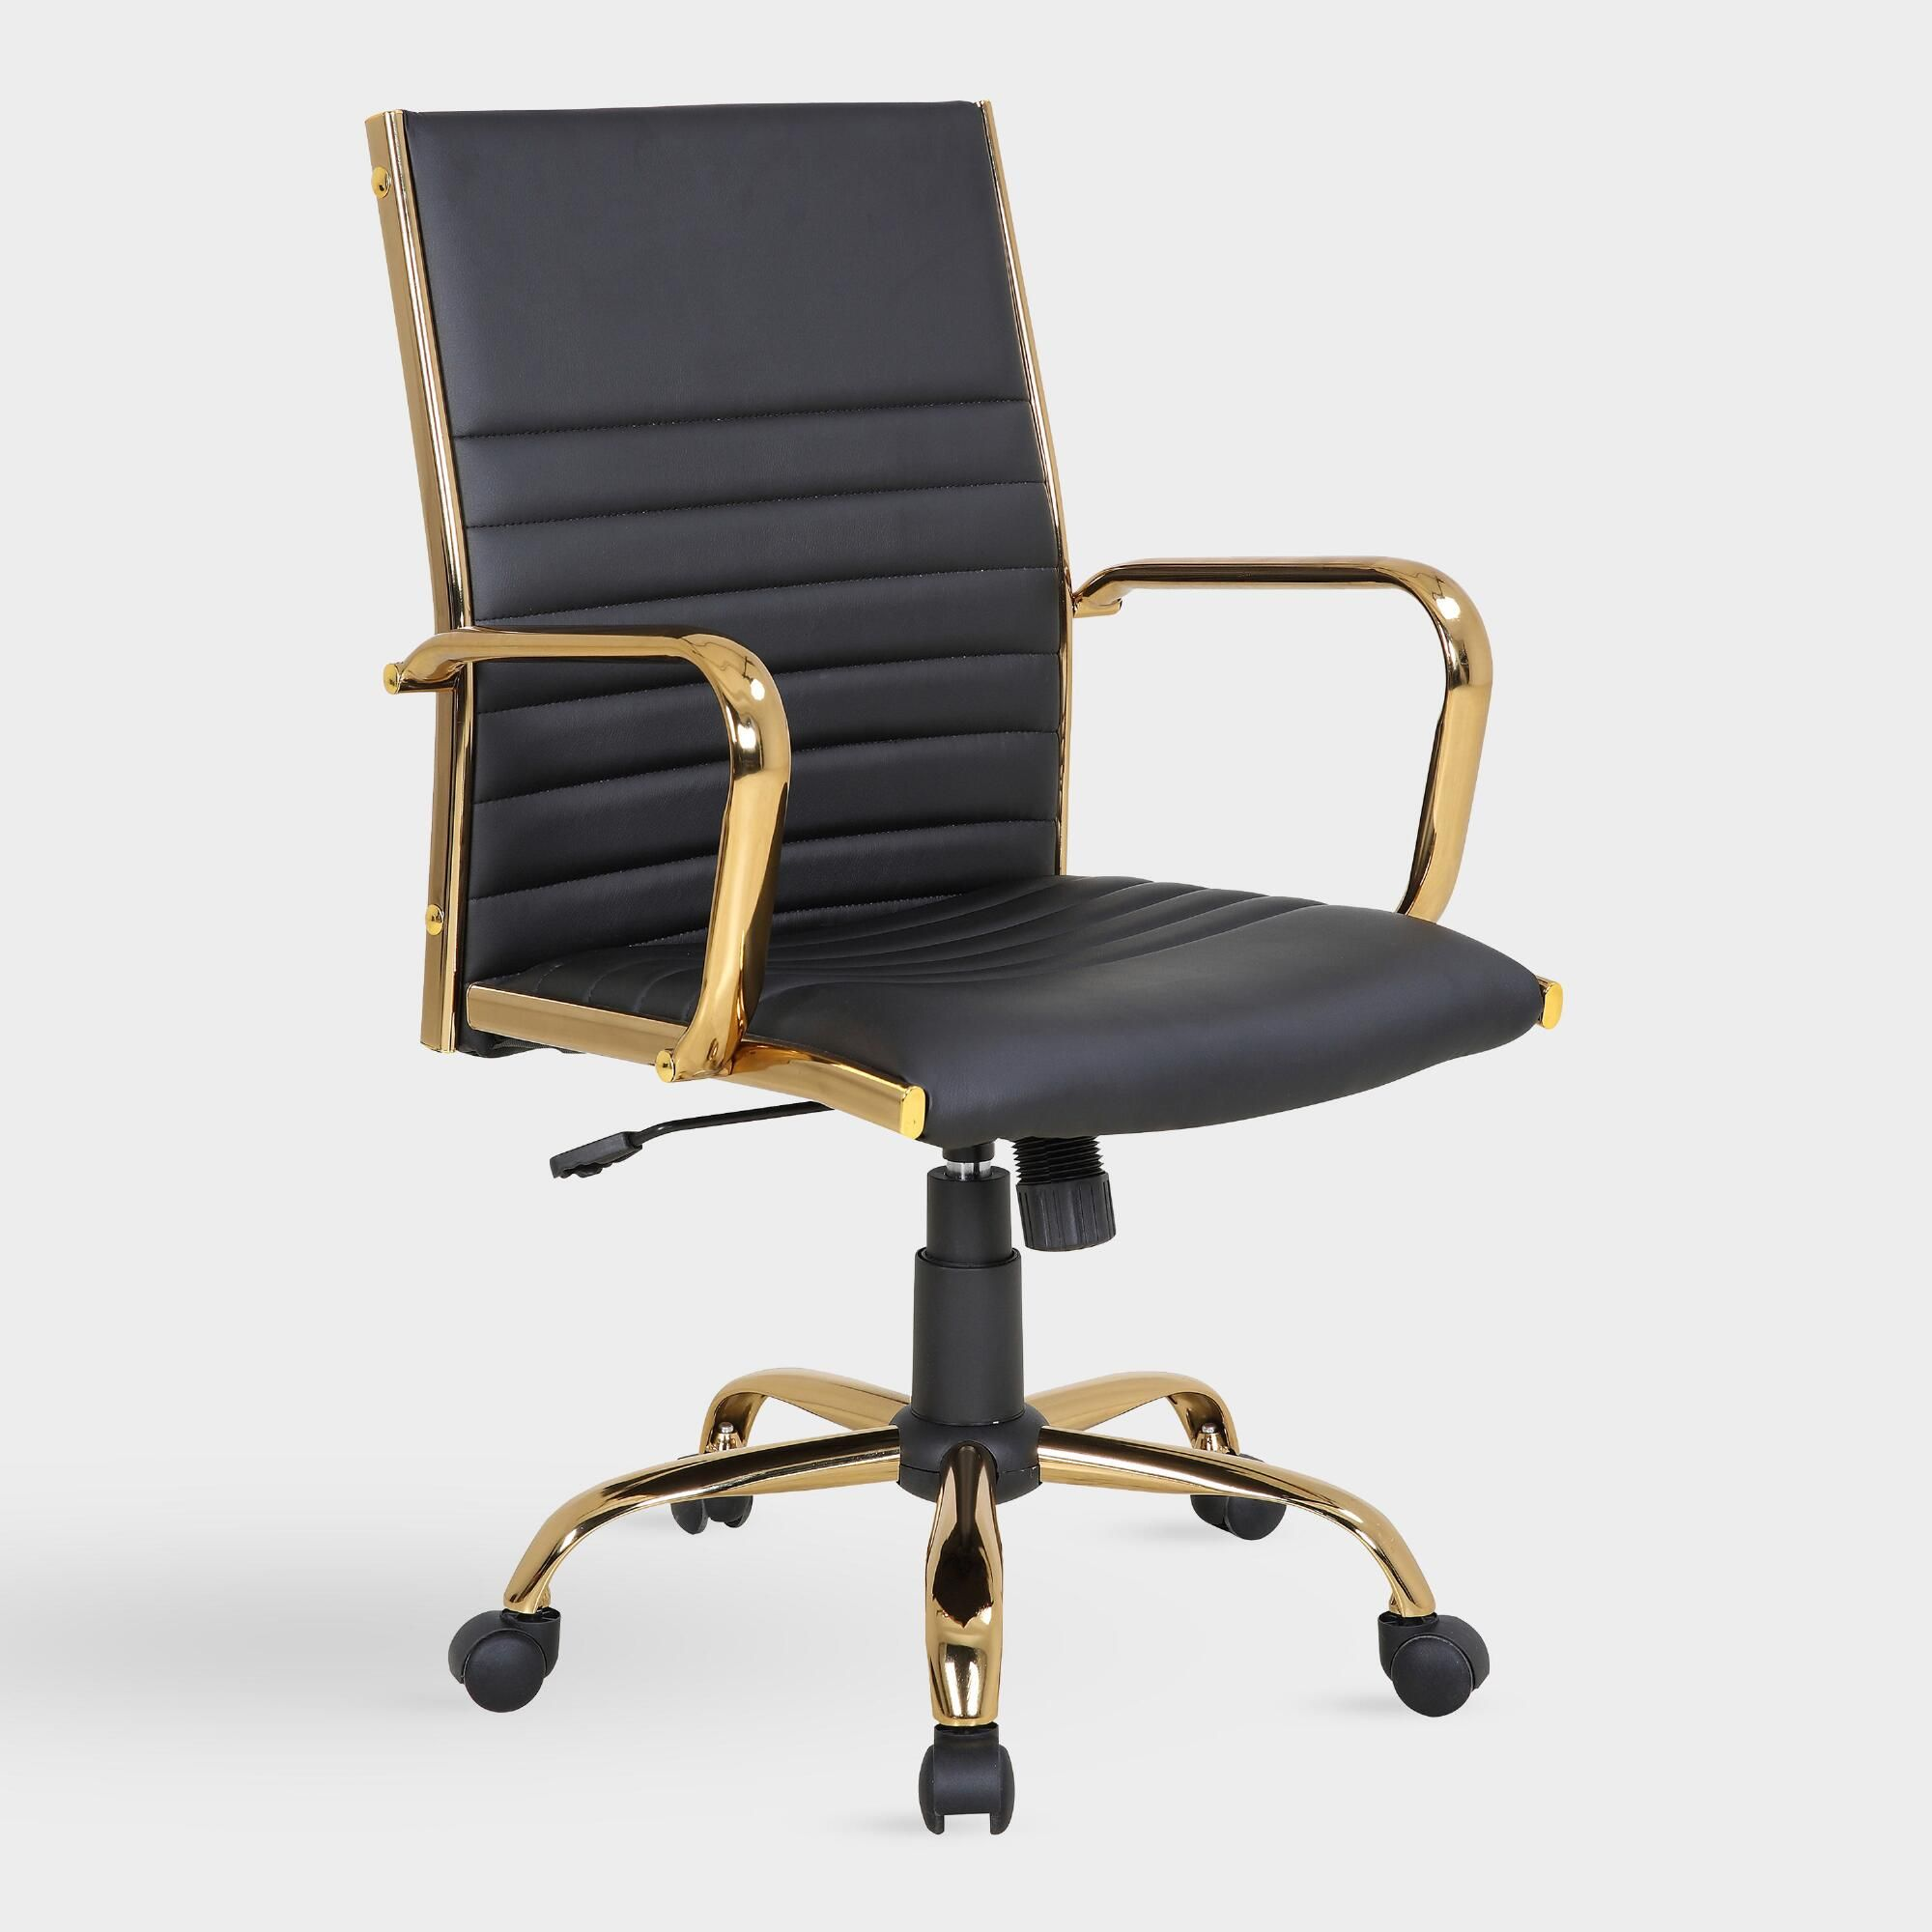 Surprising Black And Gold Channel Back Office Chair By World Market Pabps2019 Chair Design Images Pabps2019Com